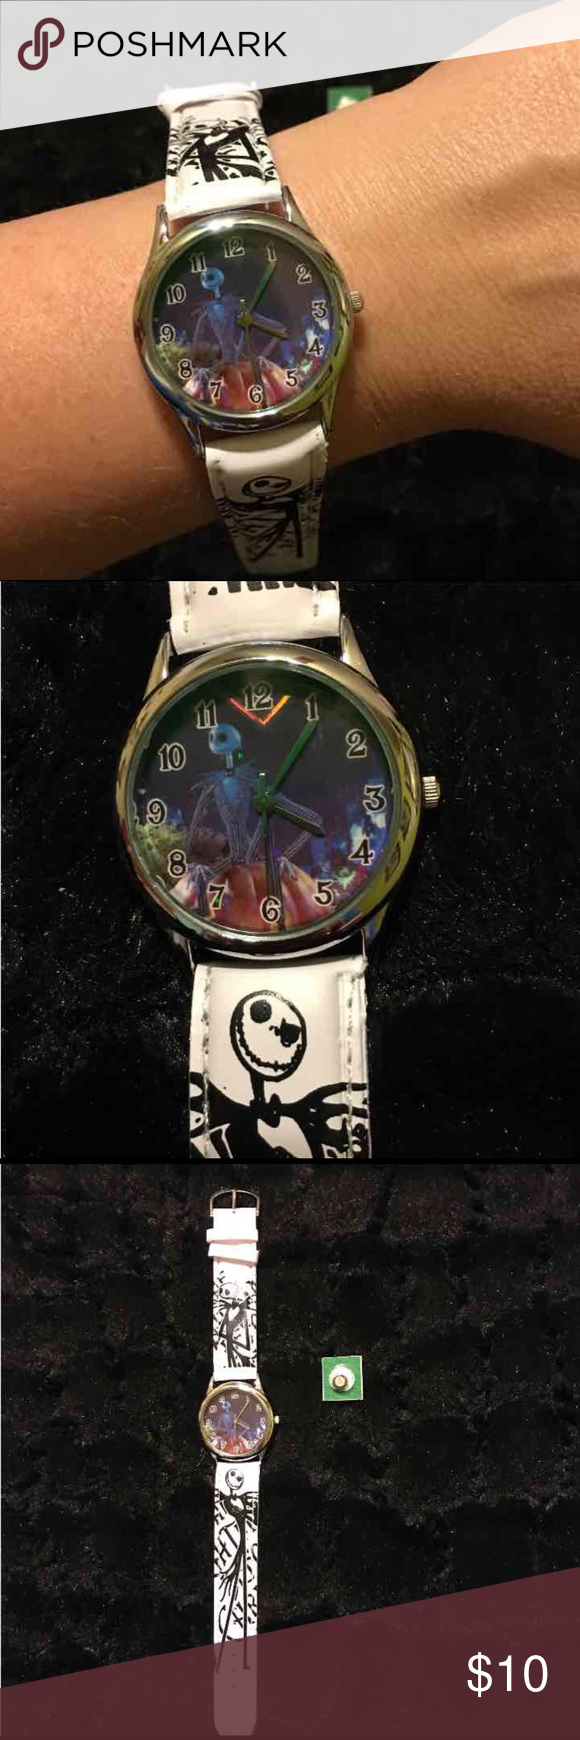 Nightmare Before Christmas Watch Boutique | Customer support and ...